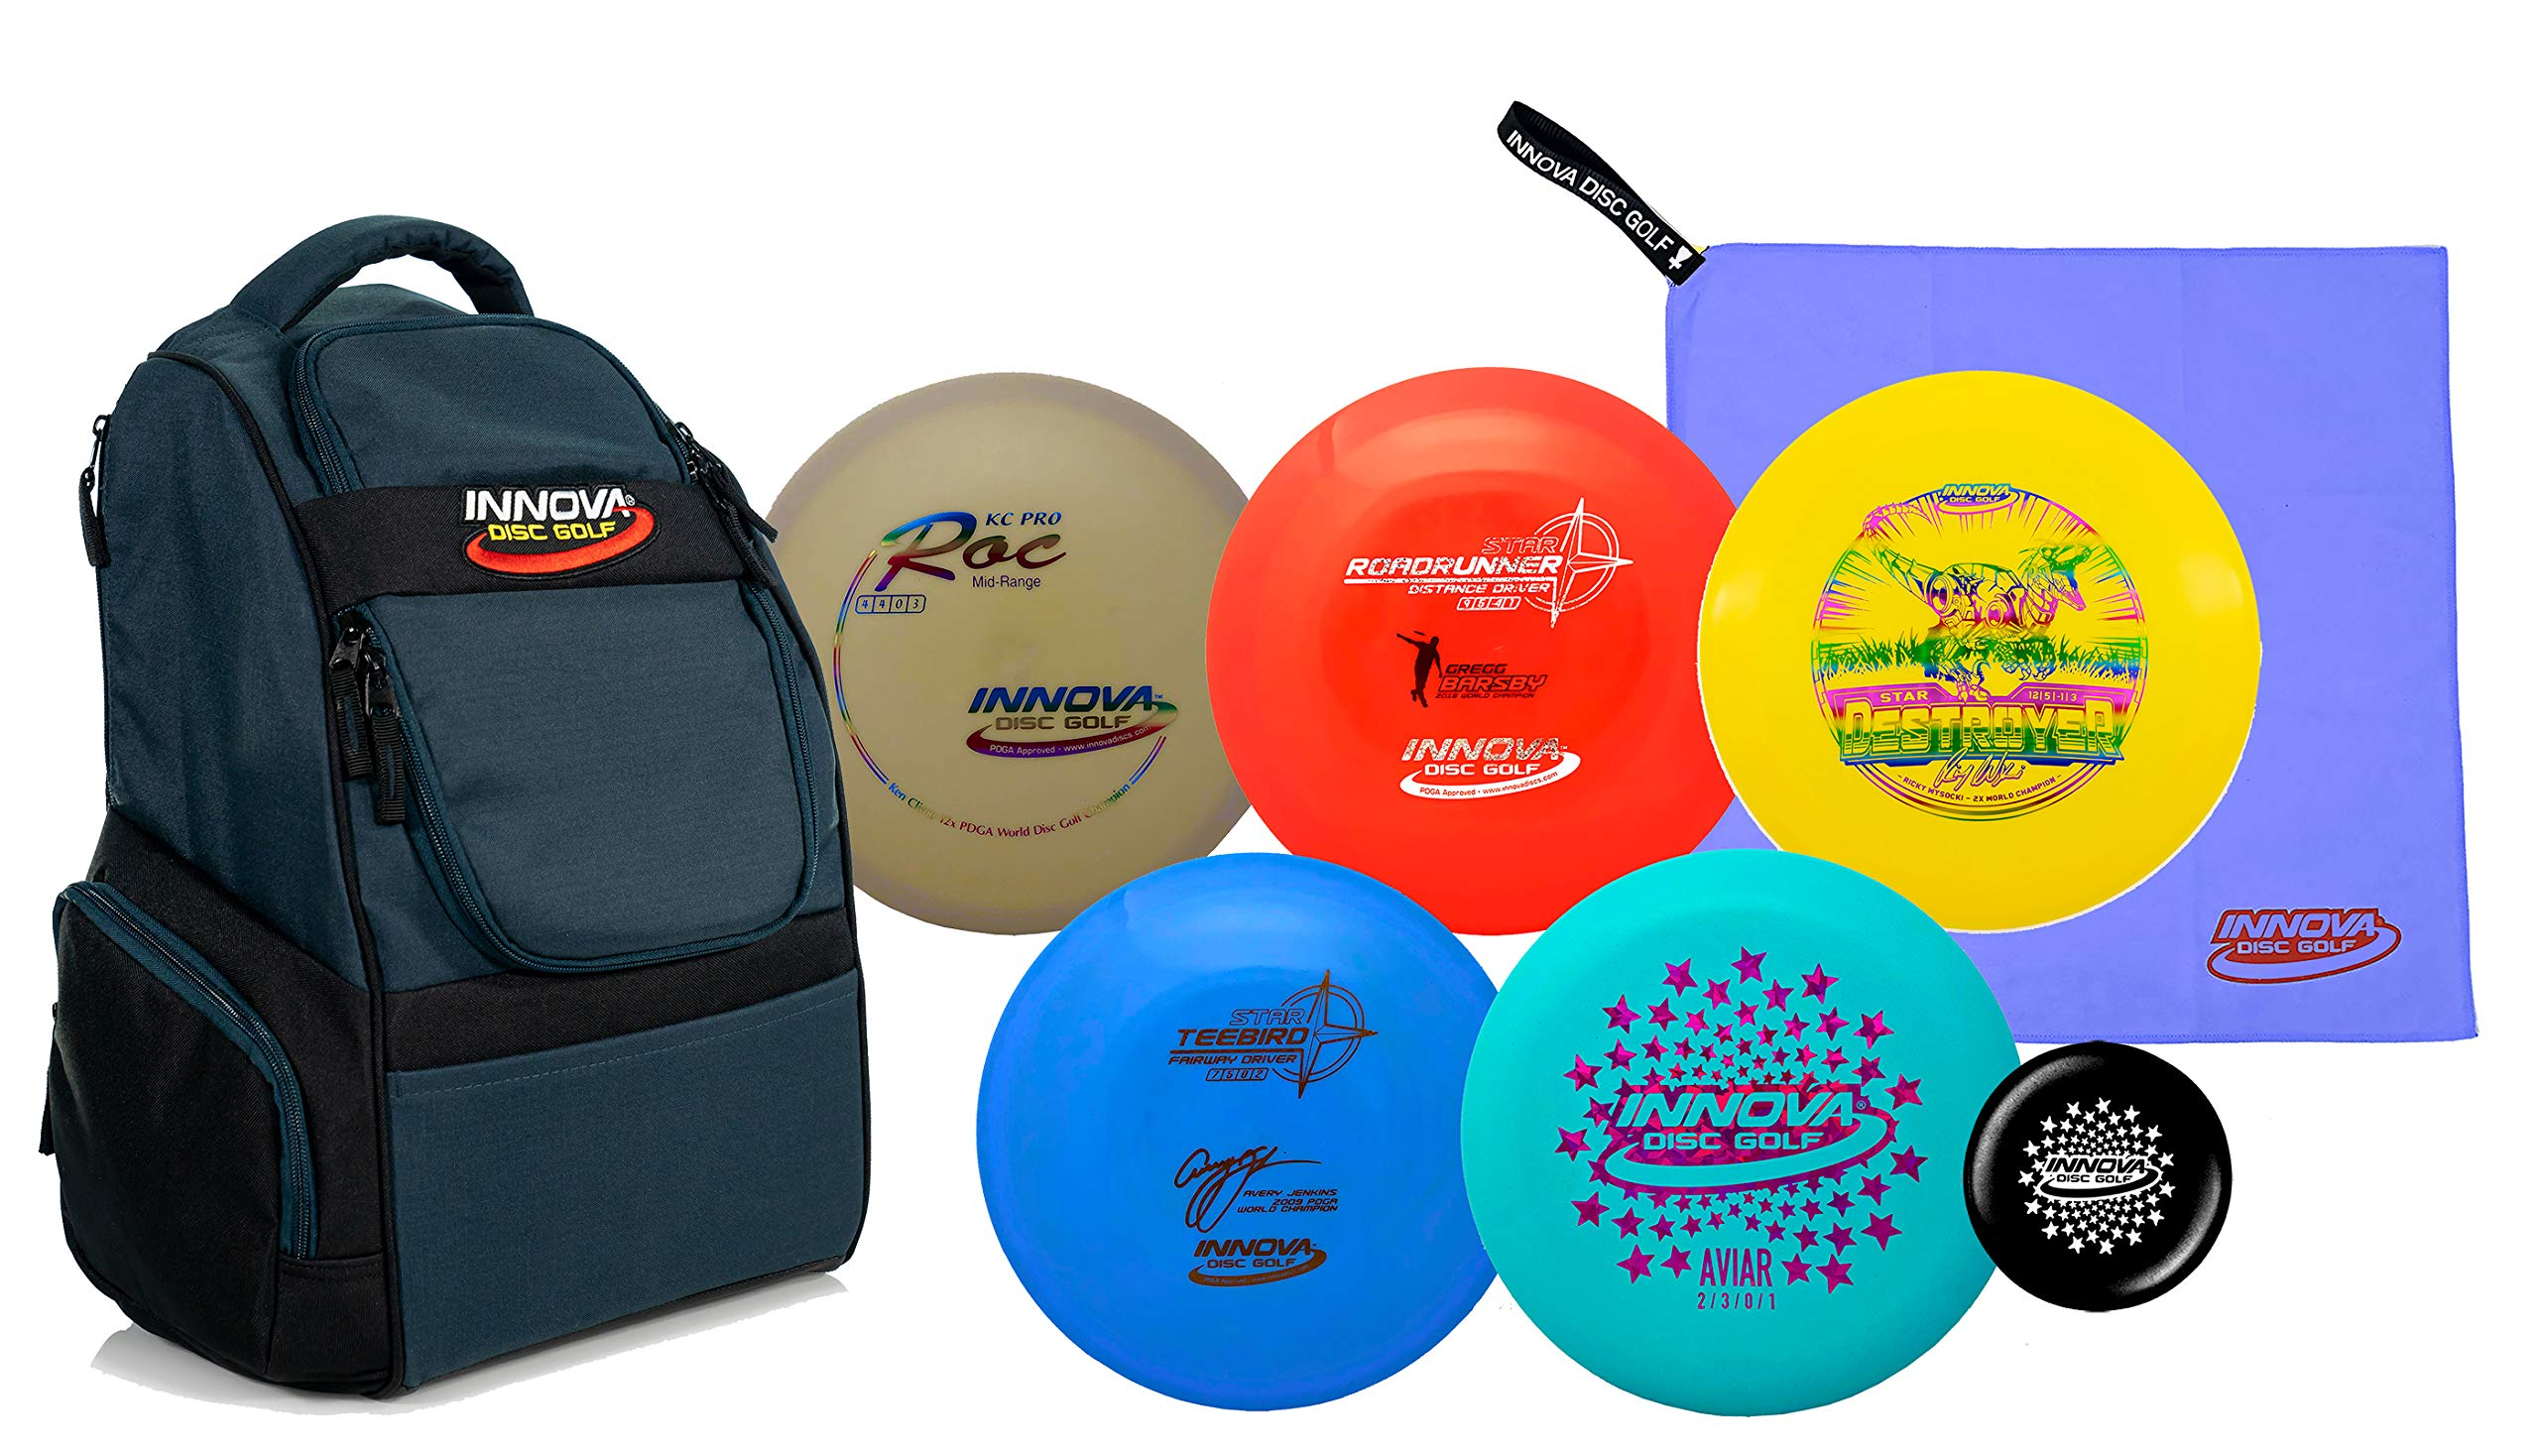 Innova Disc Golf Set with 5 World Champion Discs and Adventure Disc Golf Backpack - Drivers, Mid-Range, Putter, Towel and Mini Marker Disc - Upgrade Your Game by Innova Disc